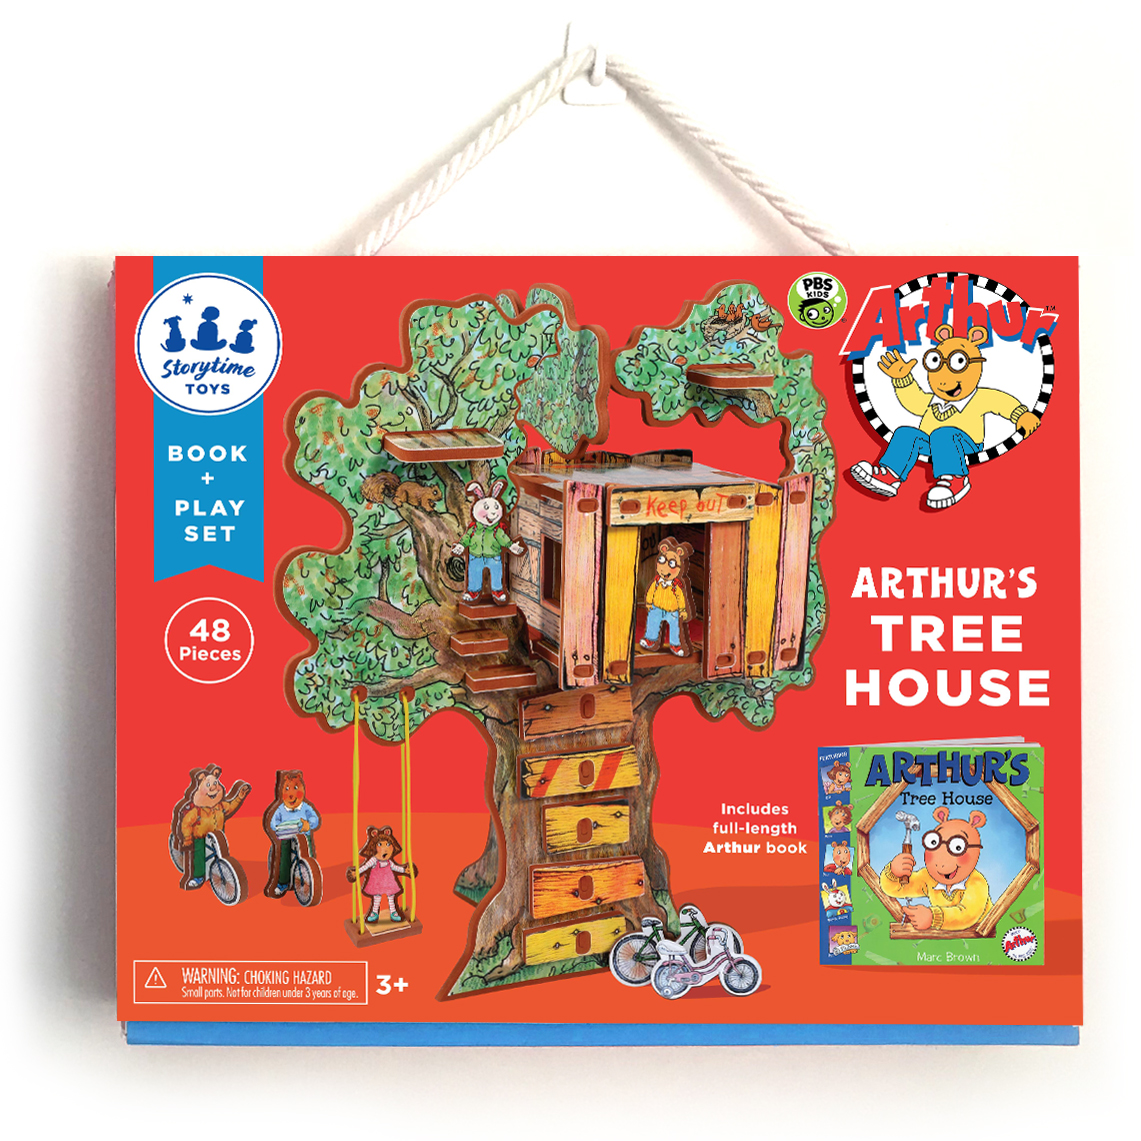 Arthur's Tree House